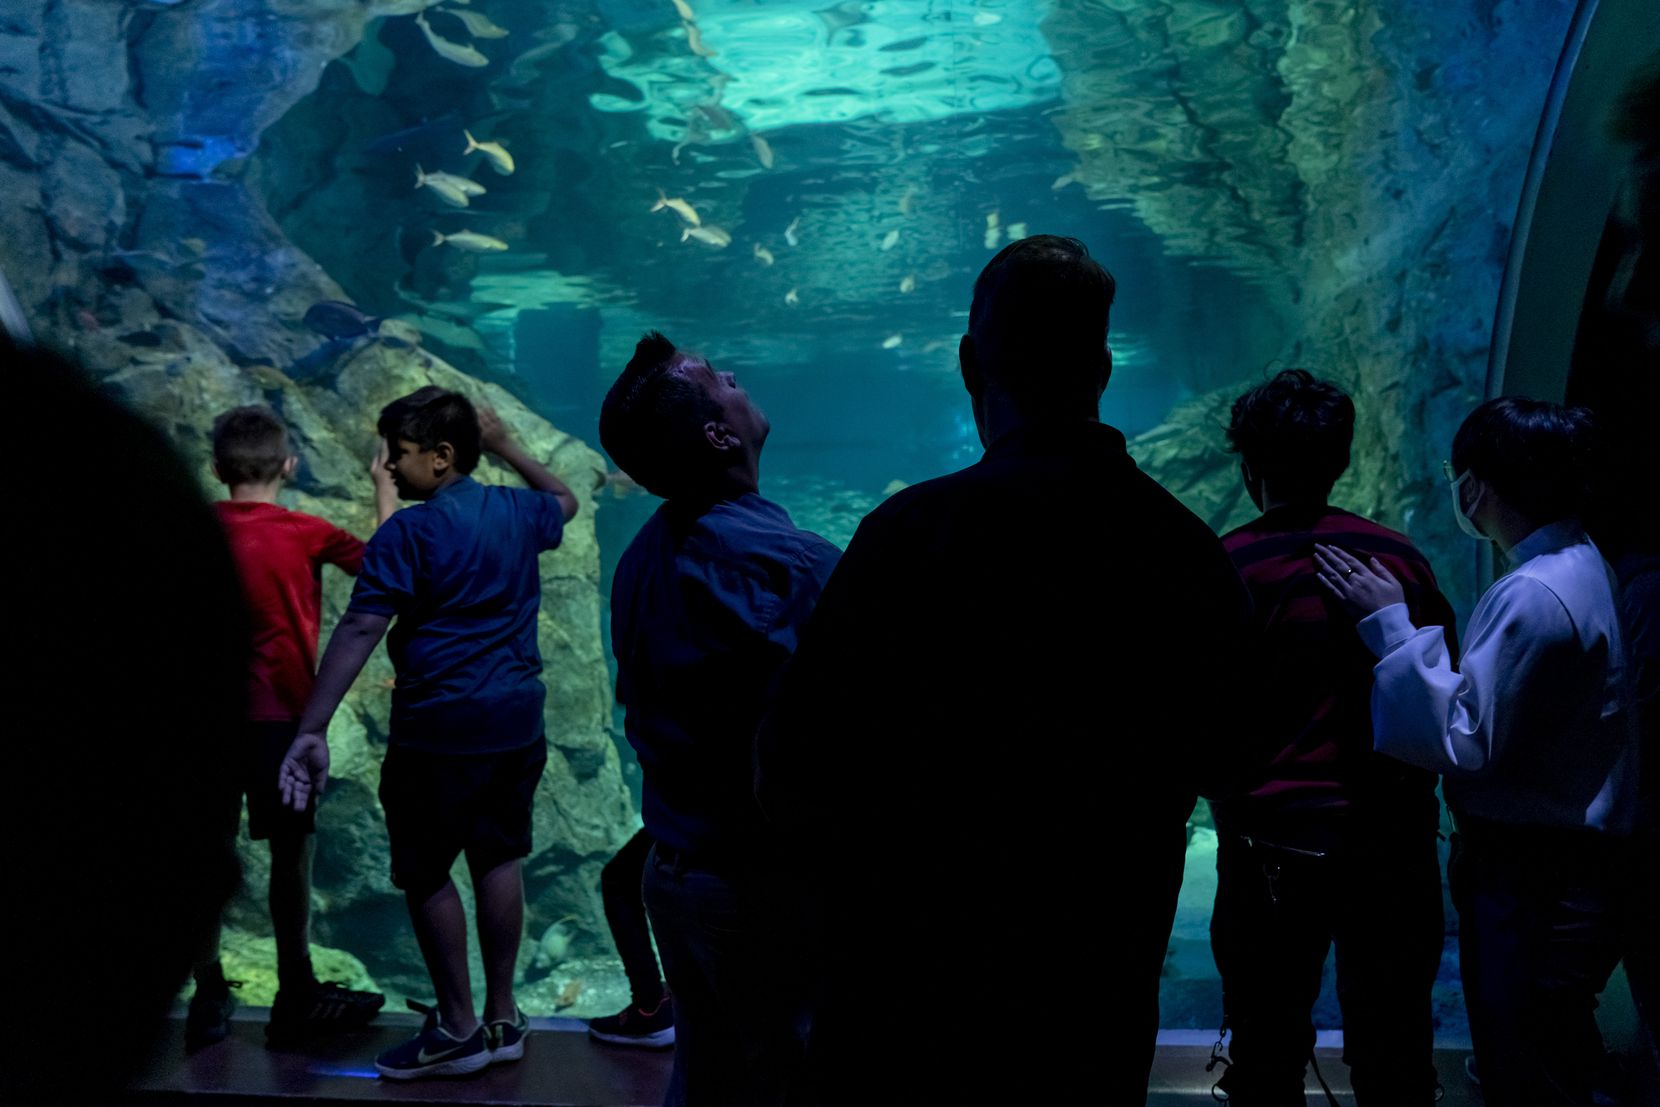 Dallas City Council member Adam Bazaldua, center left, and Dallas Park and Recreation board member Daniel Wood were among scores of visitors Wednesday to the St. Louis Aquarium at Union Station. The St Louis facility, like the Children's Aquarium at Fair Park, is located in an area of historical significance to the city.